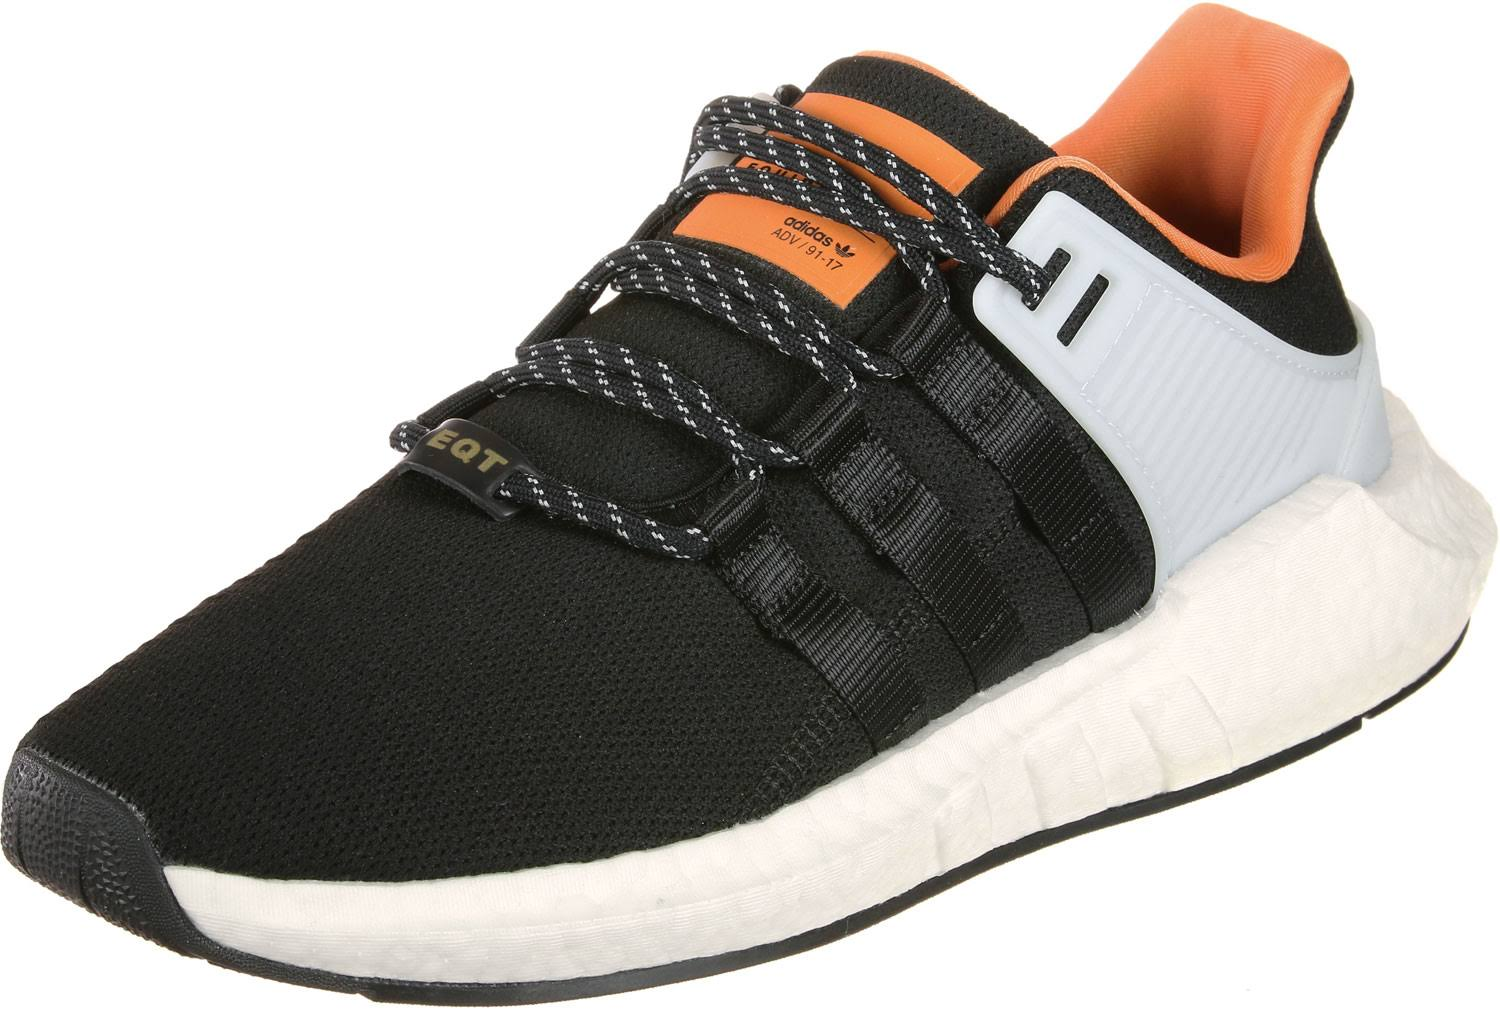 adidas Eqt Support 93/17 shoes black orange Gr.38,0 EU